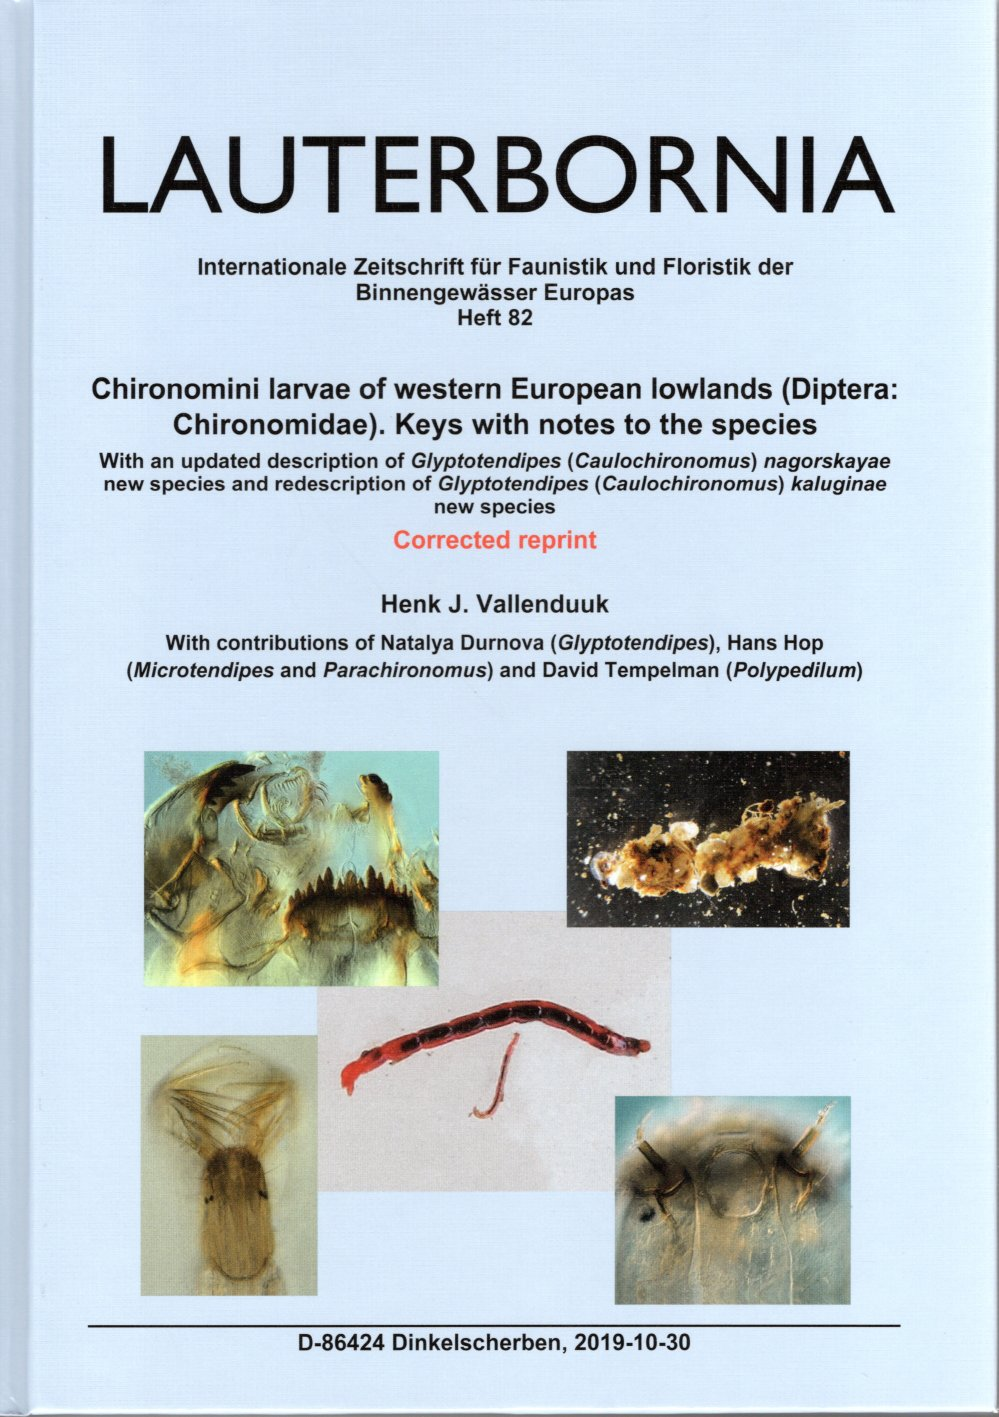 Chironomini larvae of western European lowlands (Diptera: Chironomidae). Keys with notes to the species